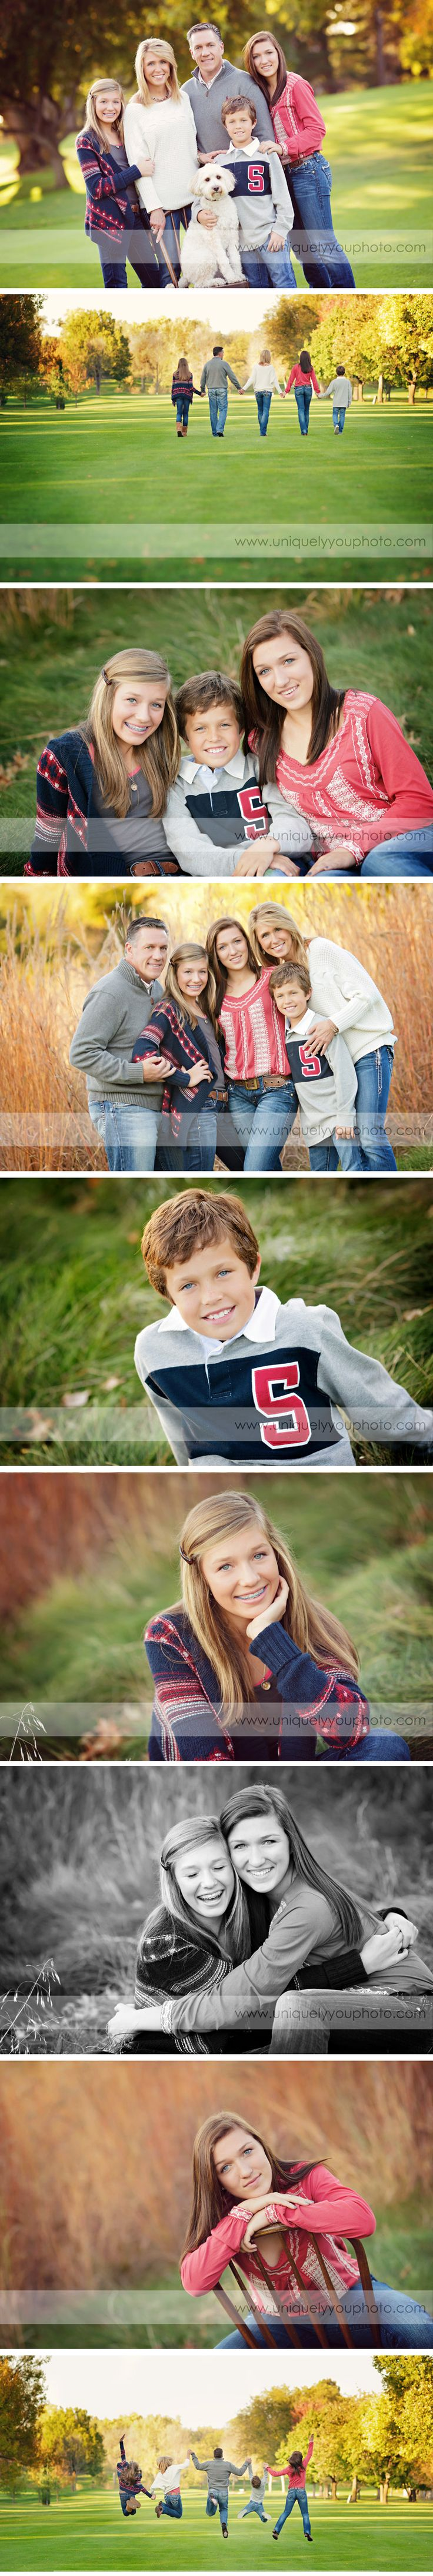 lincoln nebraska family photographer | www.uniquelyyouphoto.com